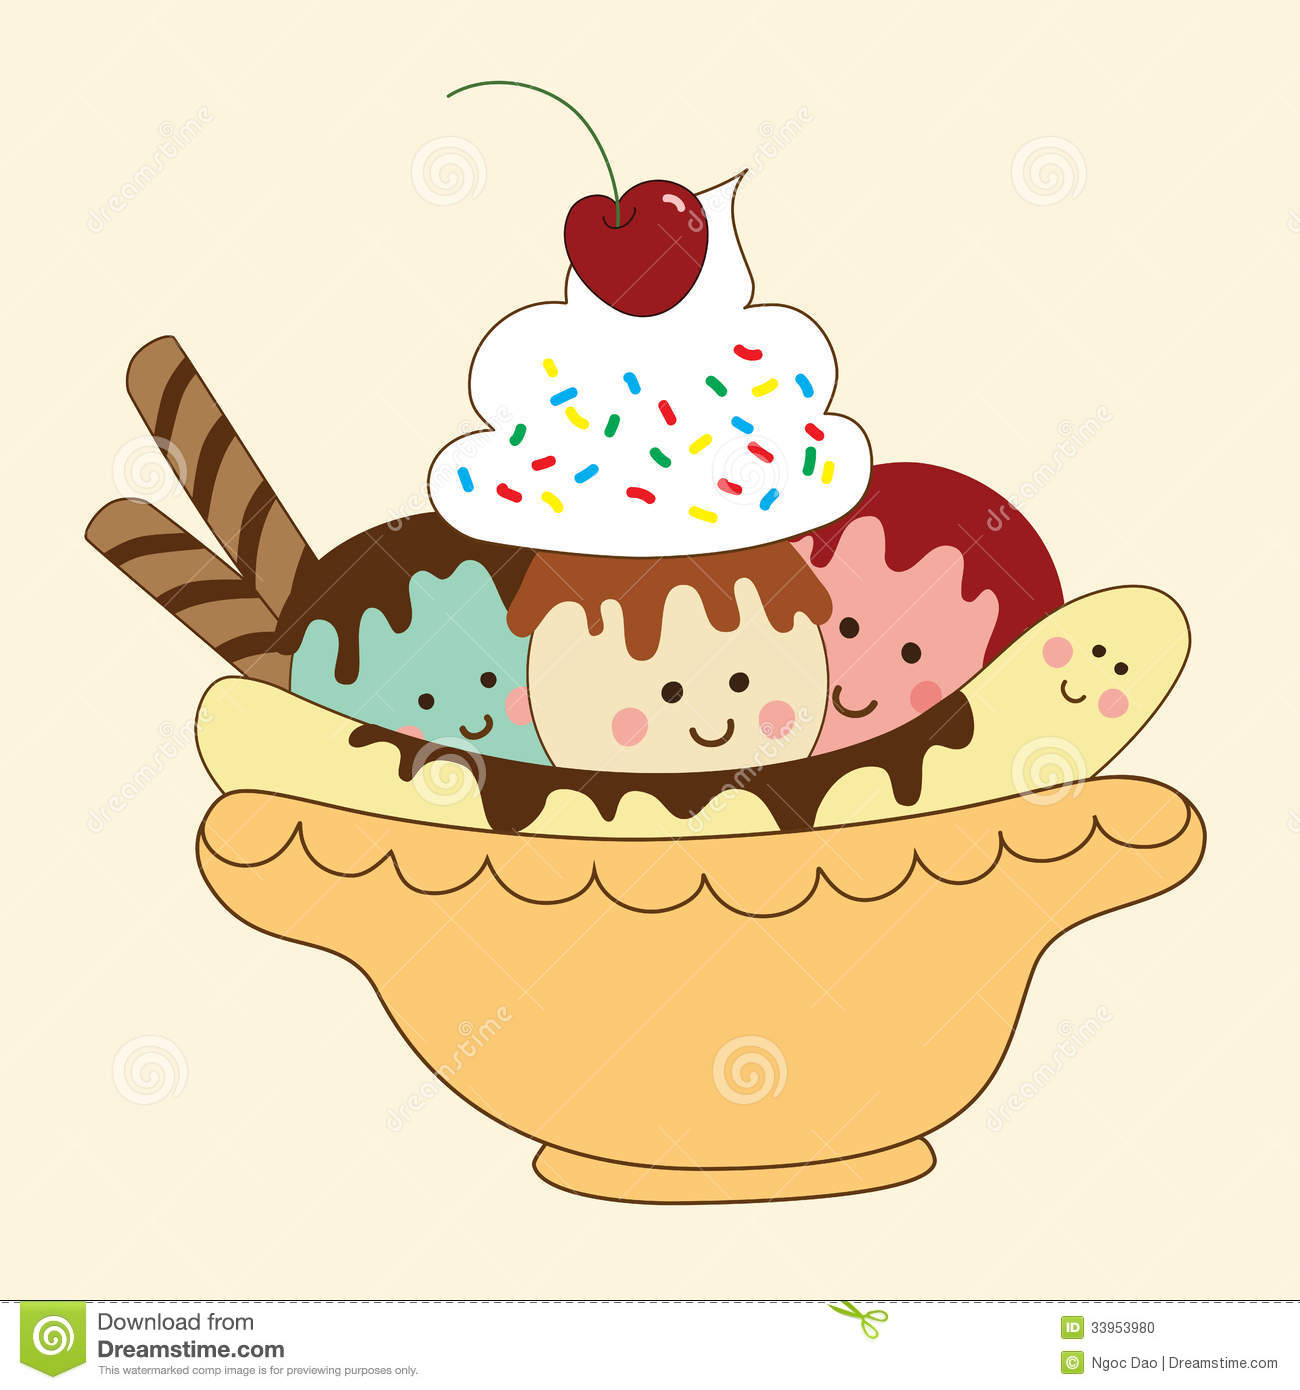 Whipped Cream Cliparts as well Stock Photos Big Cartoon Ice Cream Image20488723 additionally Coloring Suite Pages 6728 besides Royalty Vrije Stock Afbeelding De Ijscoupe Van Het Roomijs Image9192496 together with Rollercoaster Clipart. on how to draw an ice cream sundae